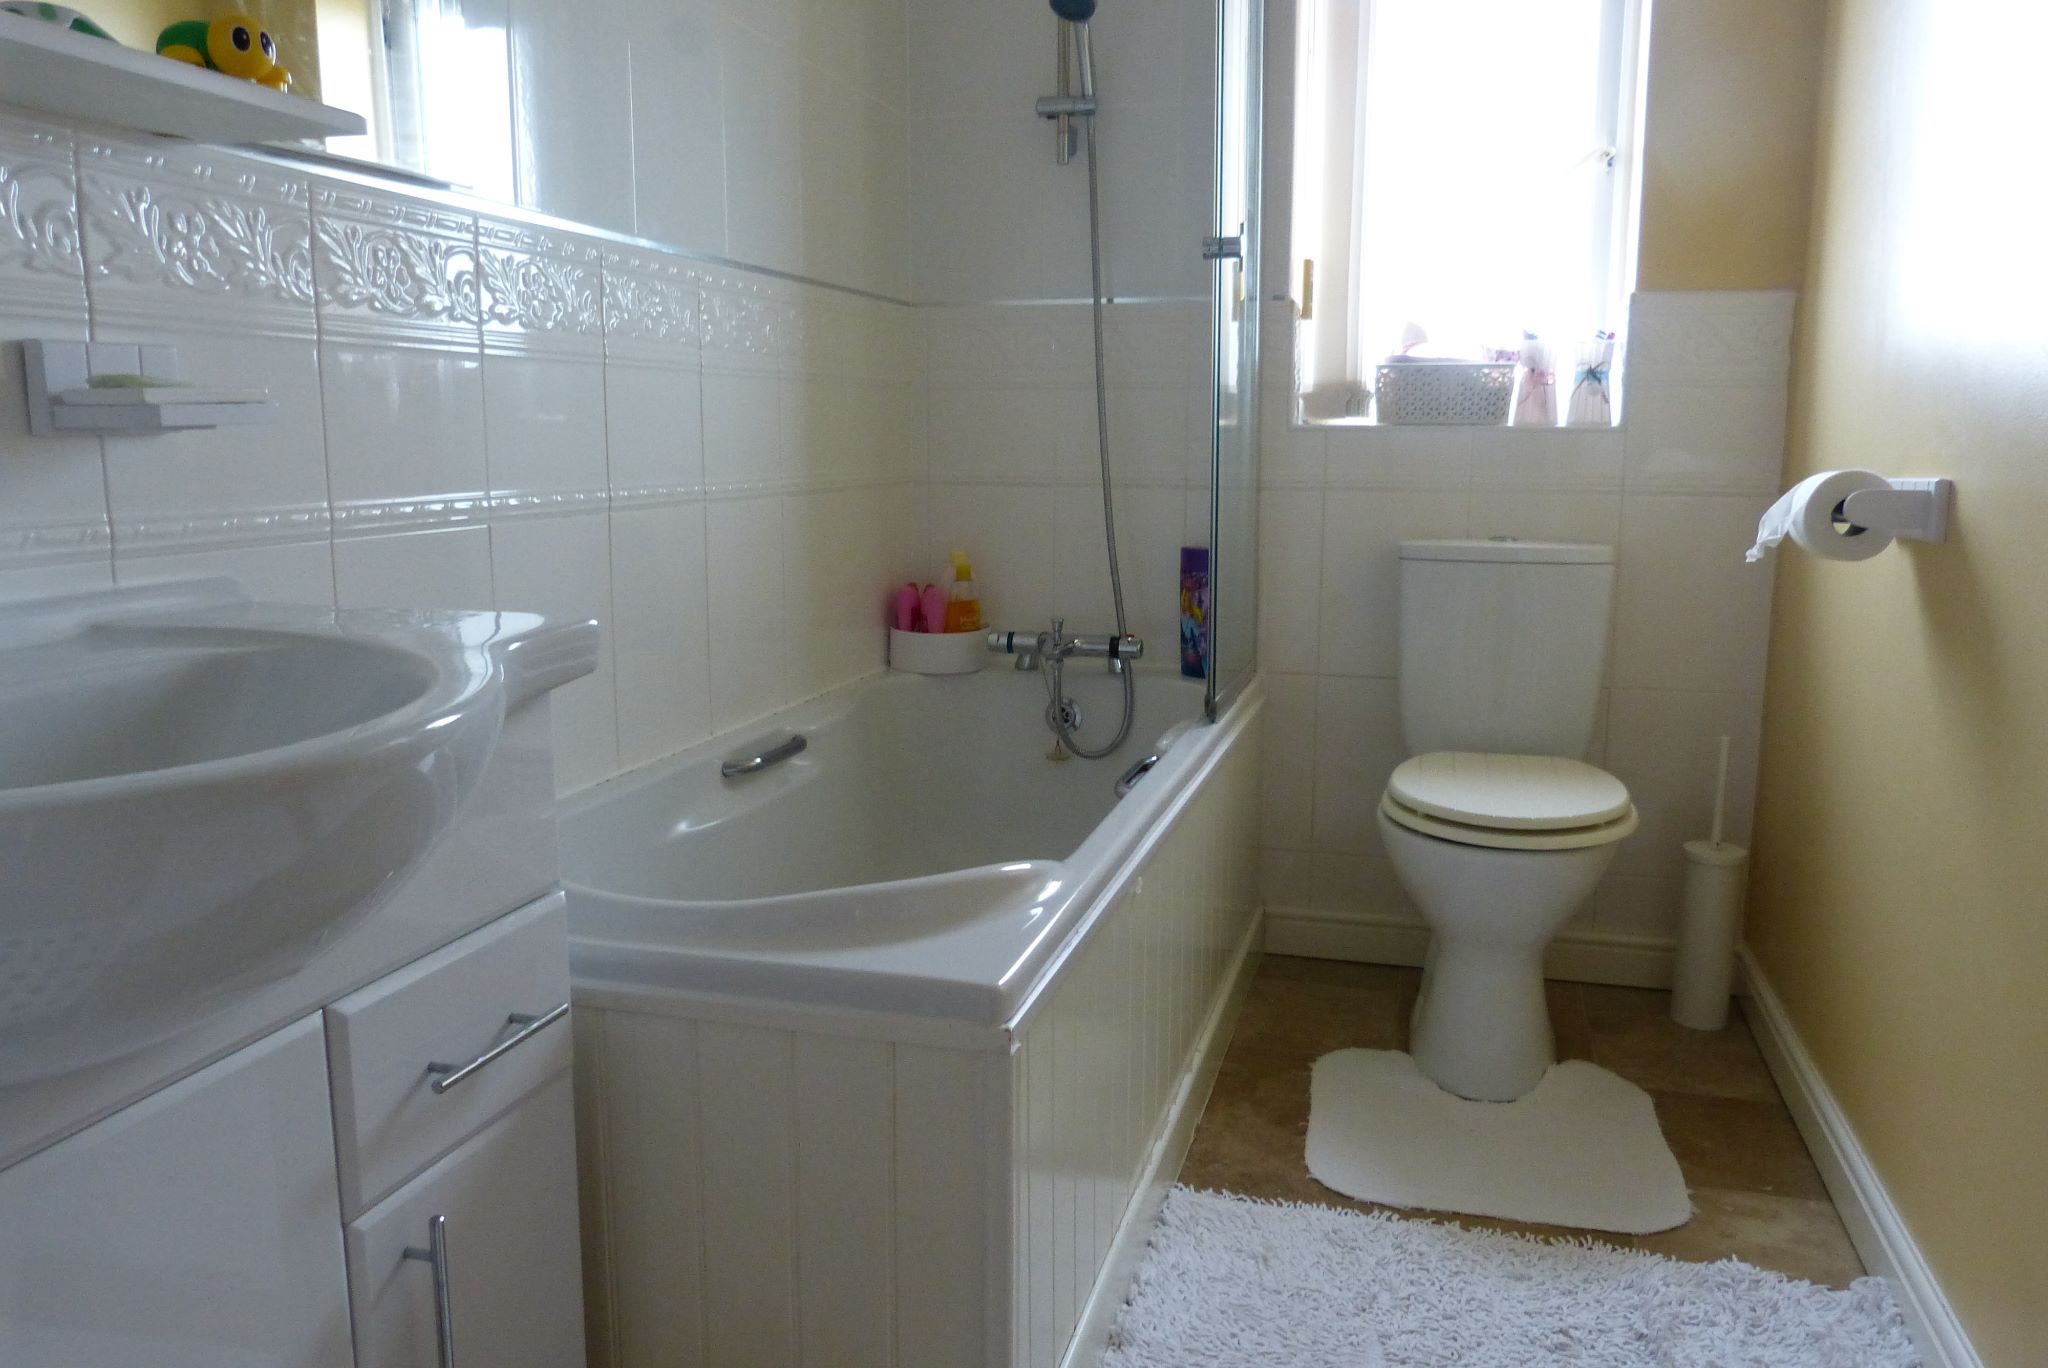 4 bedroom detached house SSTC in Abergele - Photograph 9